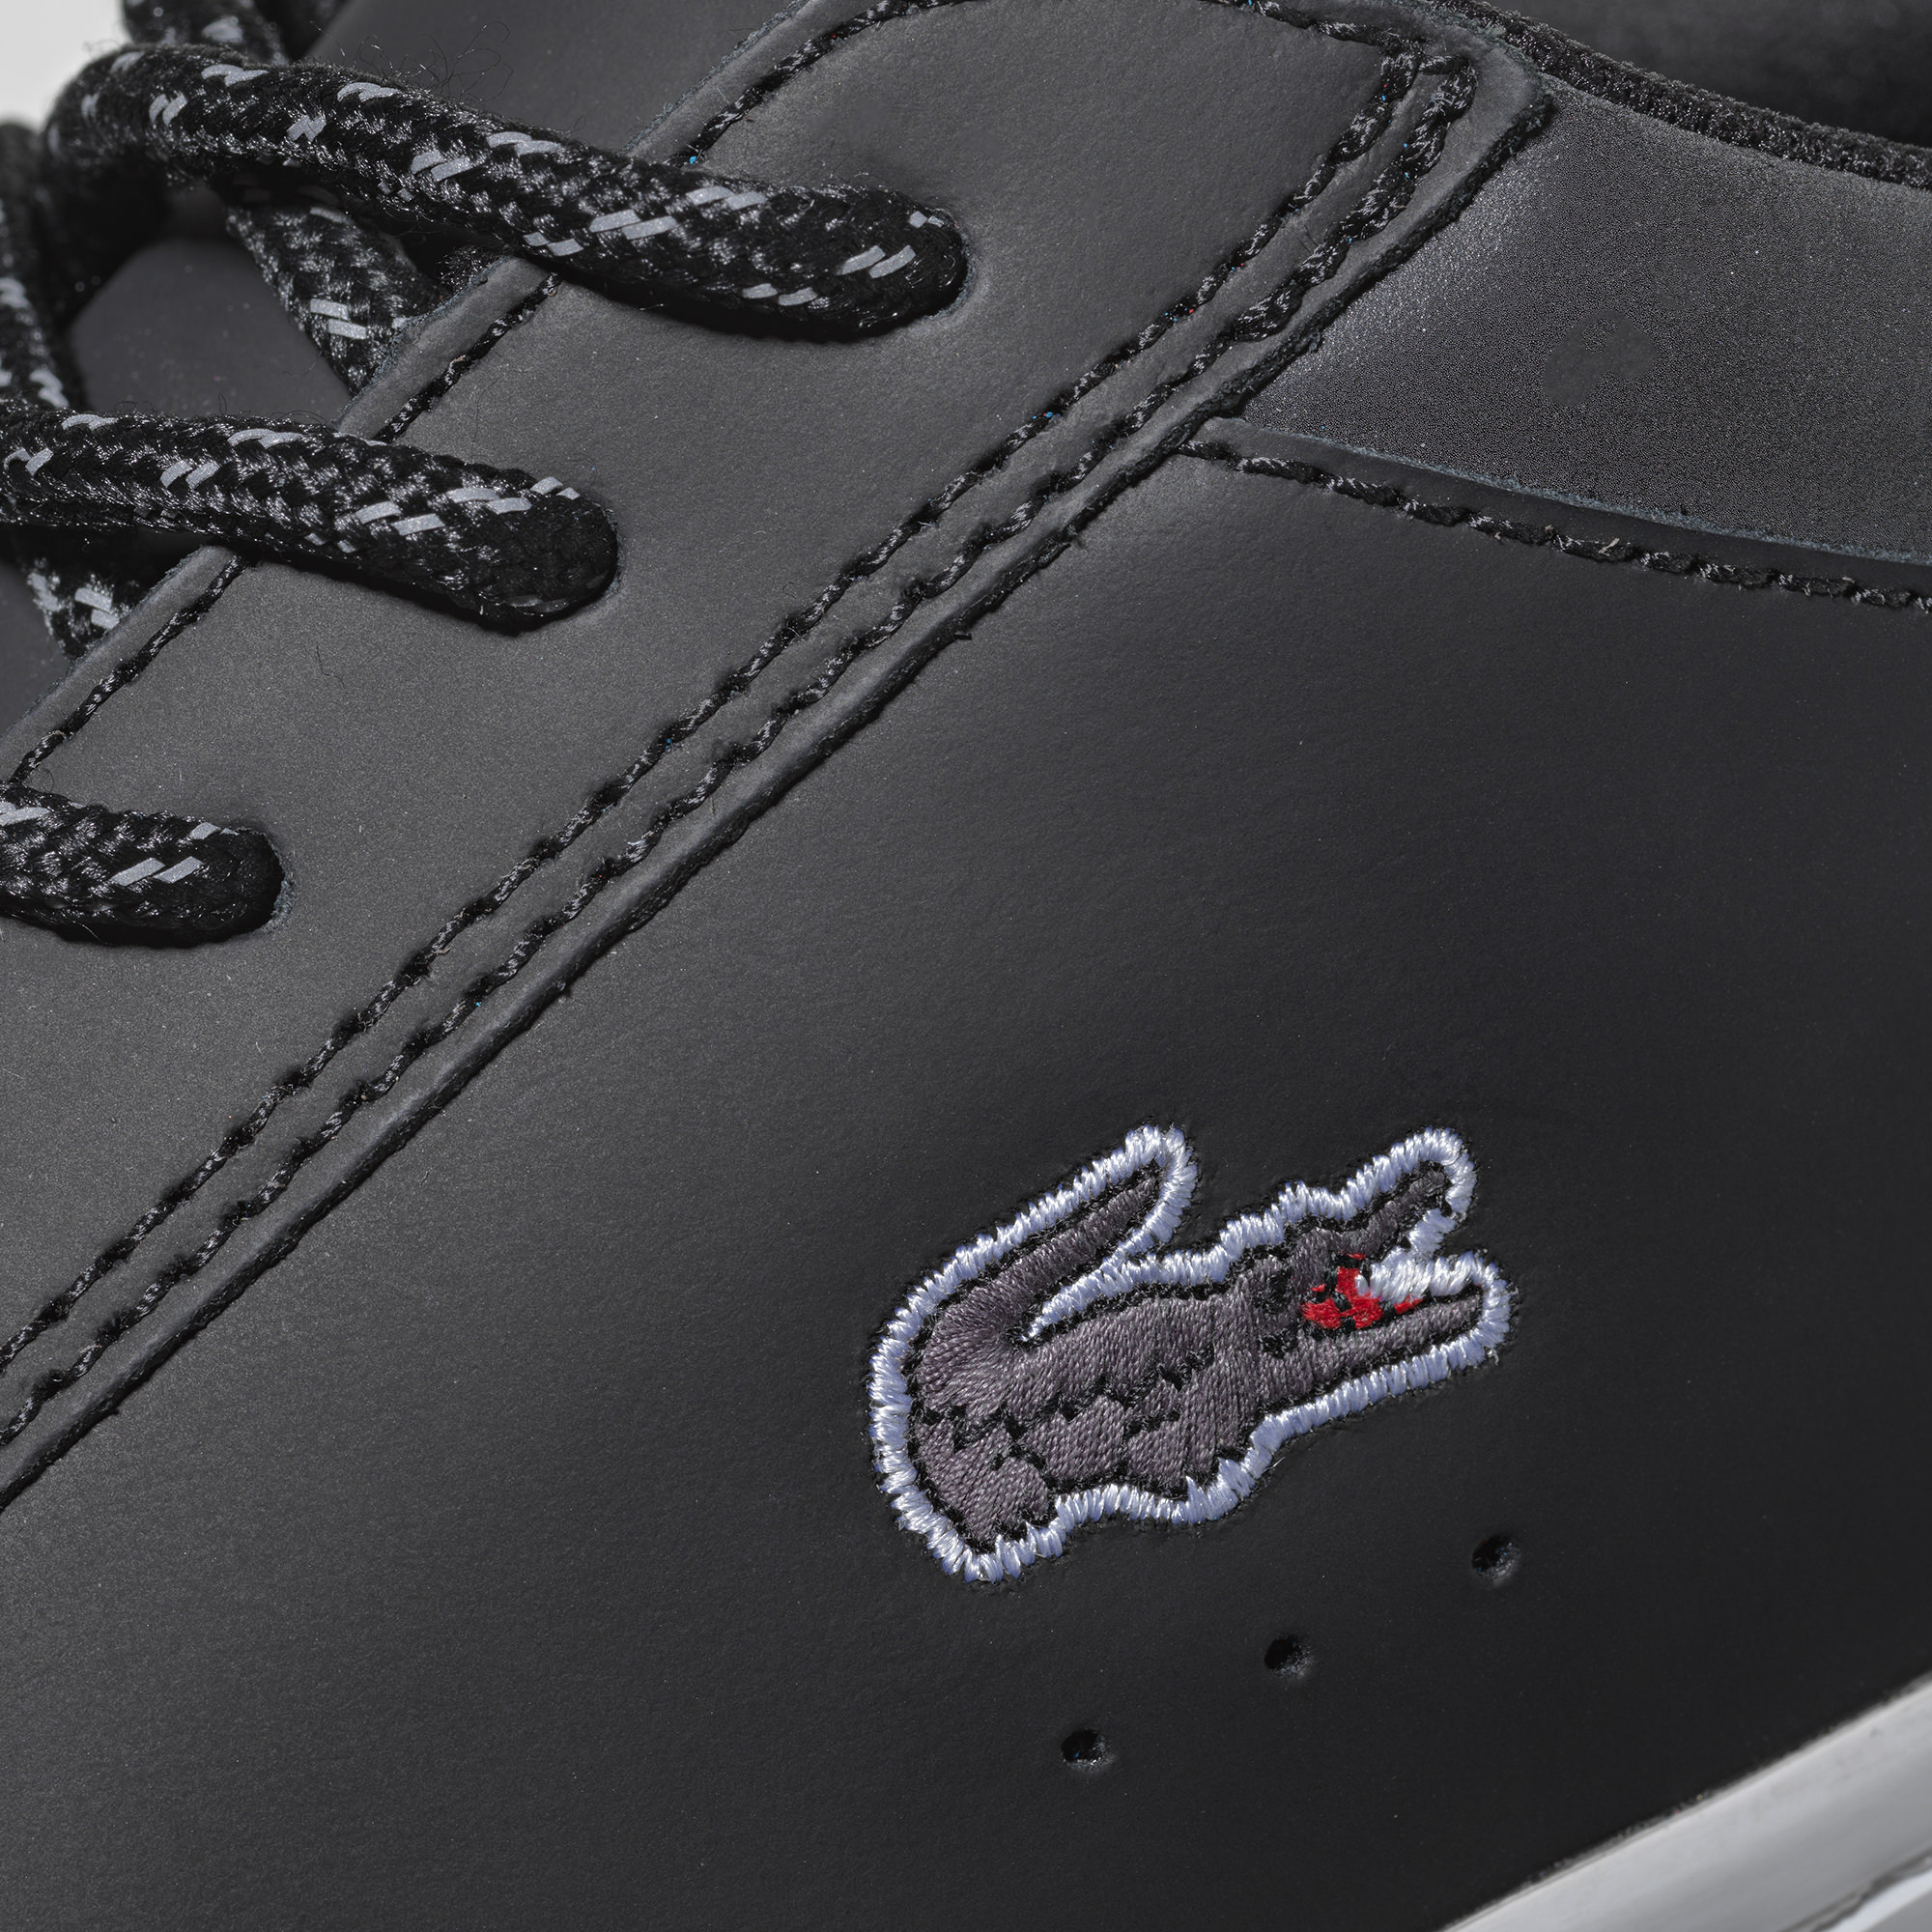 creme-creative-lacoste-reflective-pack-4.jpg